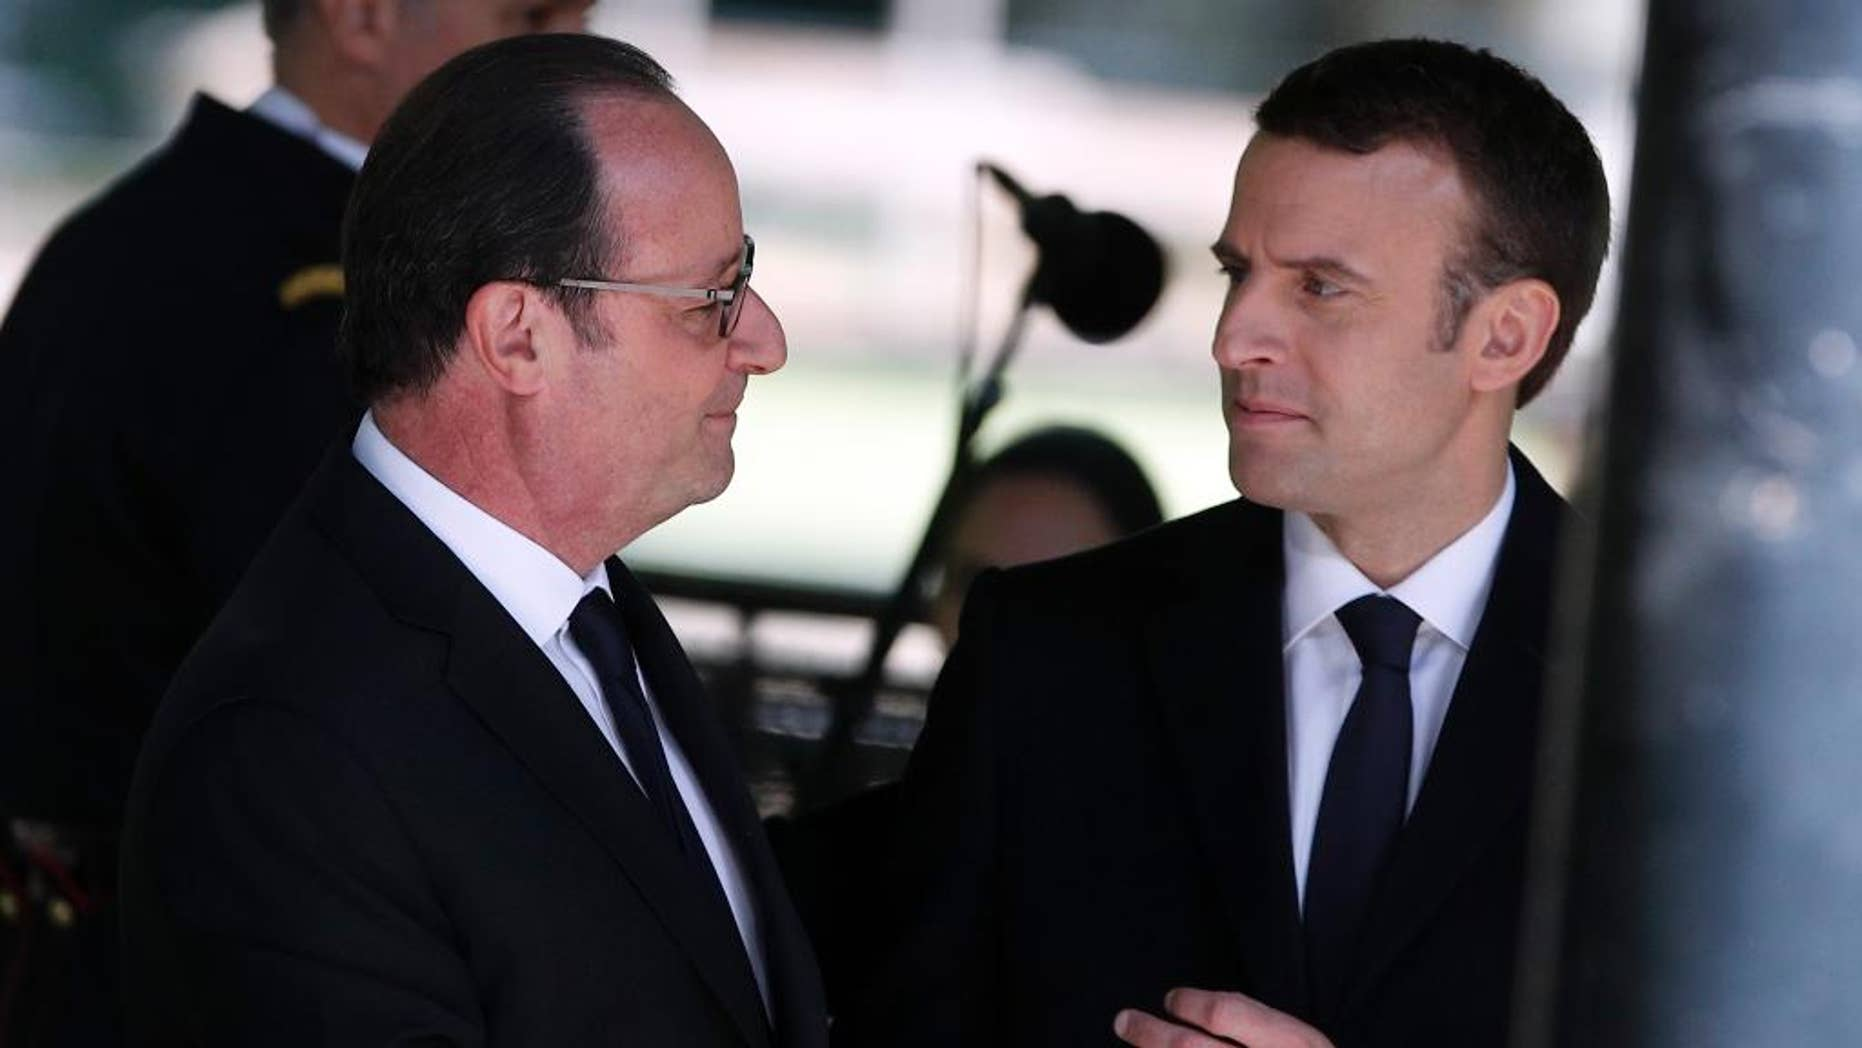 Outgoing French President Francois Hollande, left, and French President-elect Emmanuel Macron shake hands as they attend a ceremony commemorating the abolition of slavery, in Paris, Wednesday, May 10, 2017. (AP Photo/Christophe Ena)